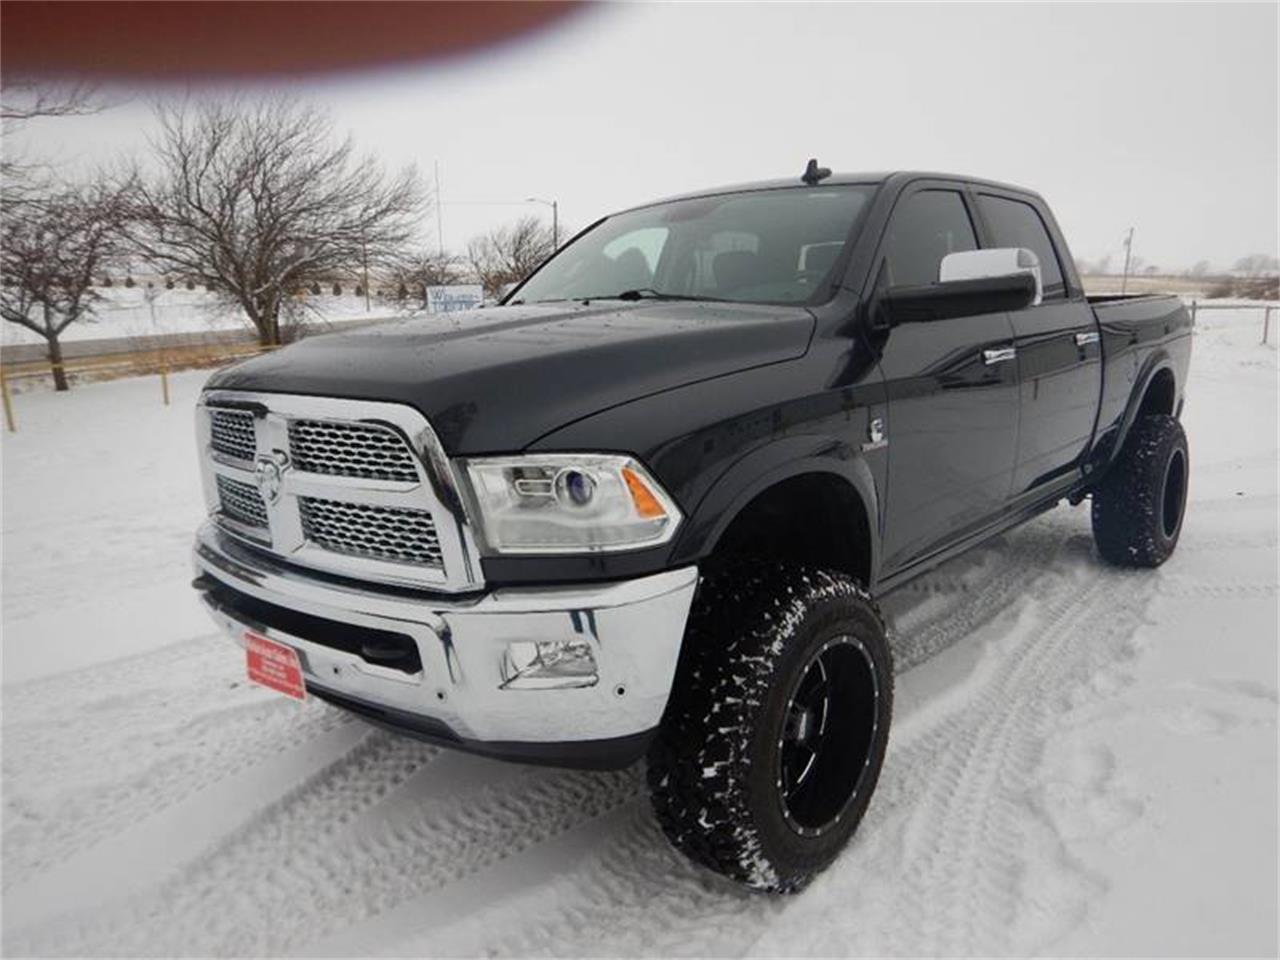 Large Picture of '14 Dodge Ram 2500 Offered by Kinion Auto Sales & Service - PB1R